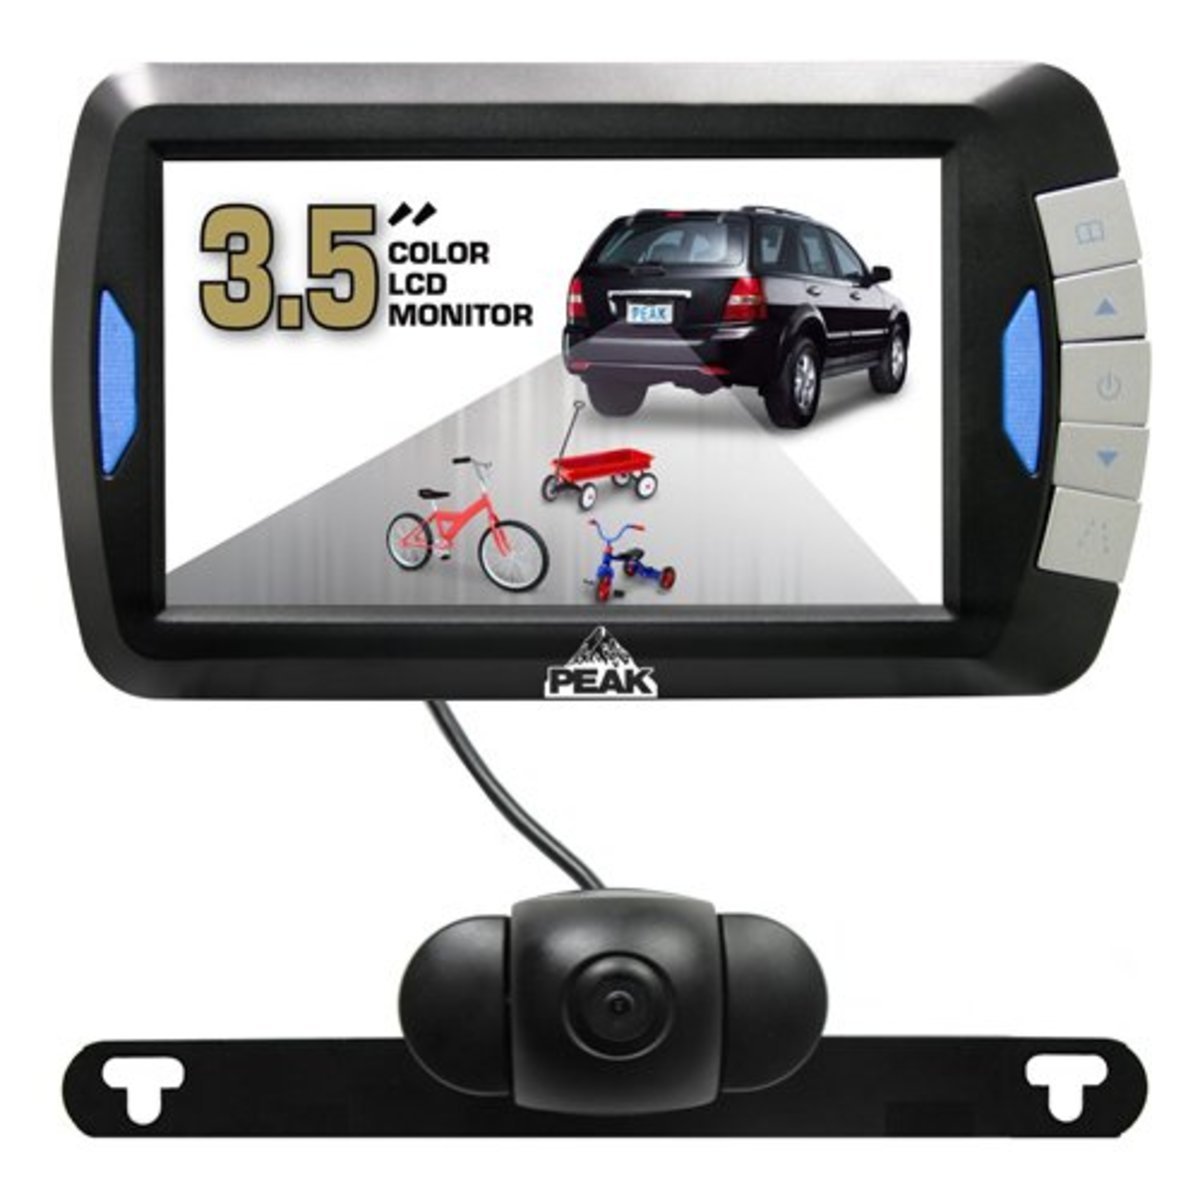 Aftermarket backup cameras - which is the best? | HubPages